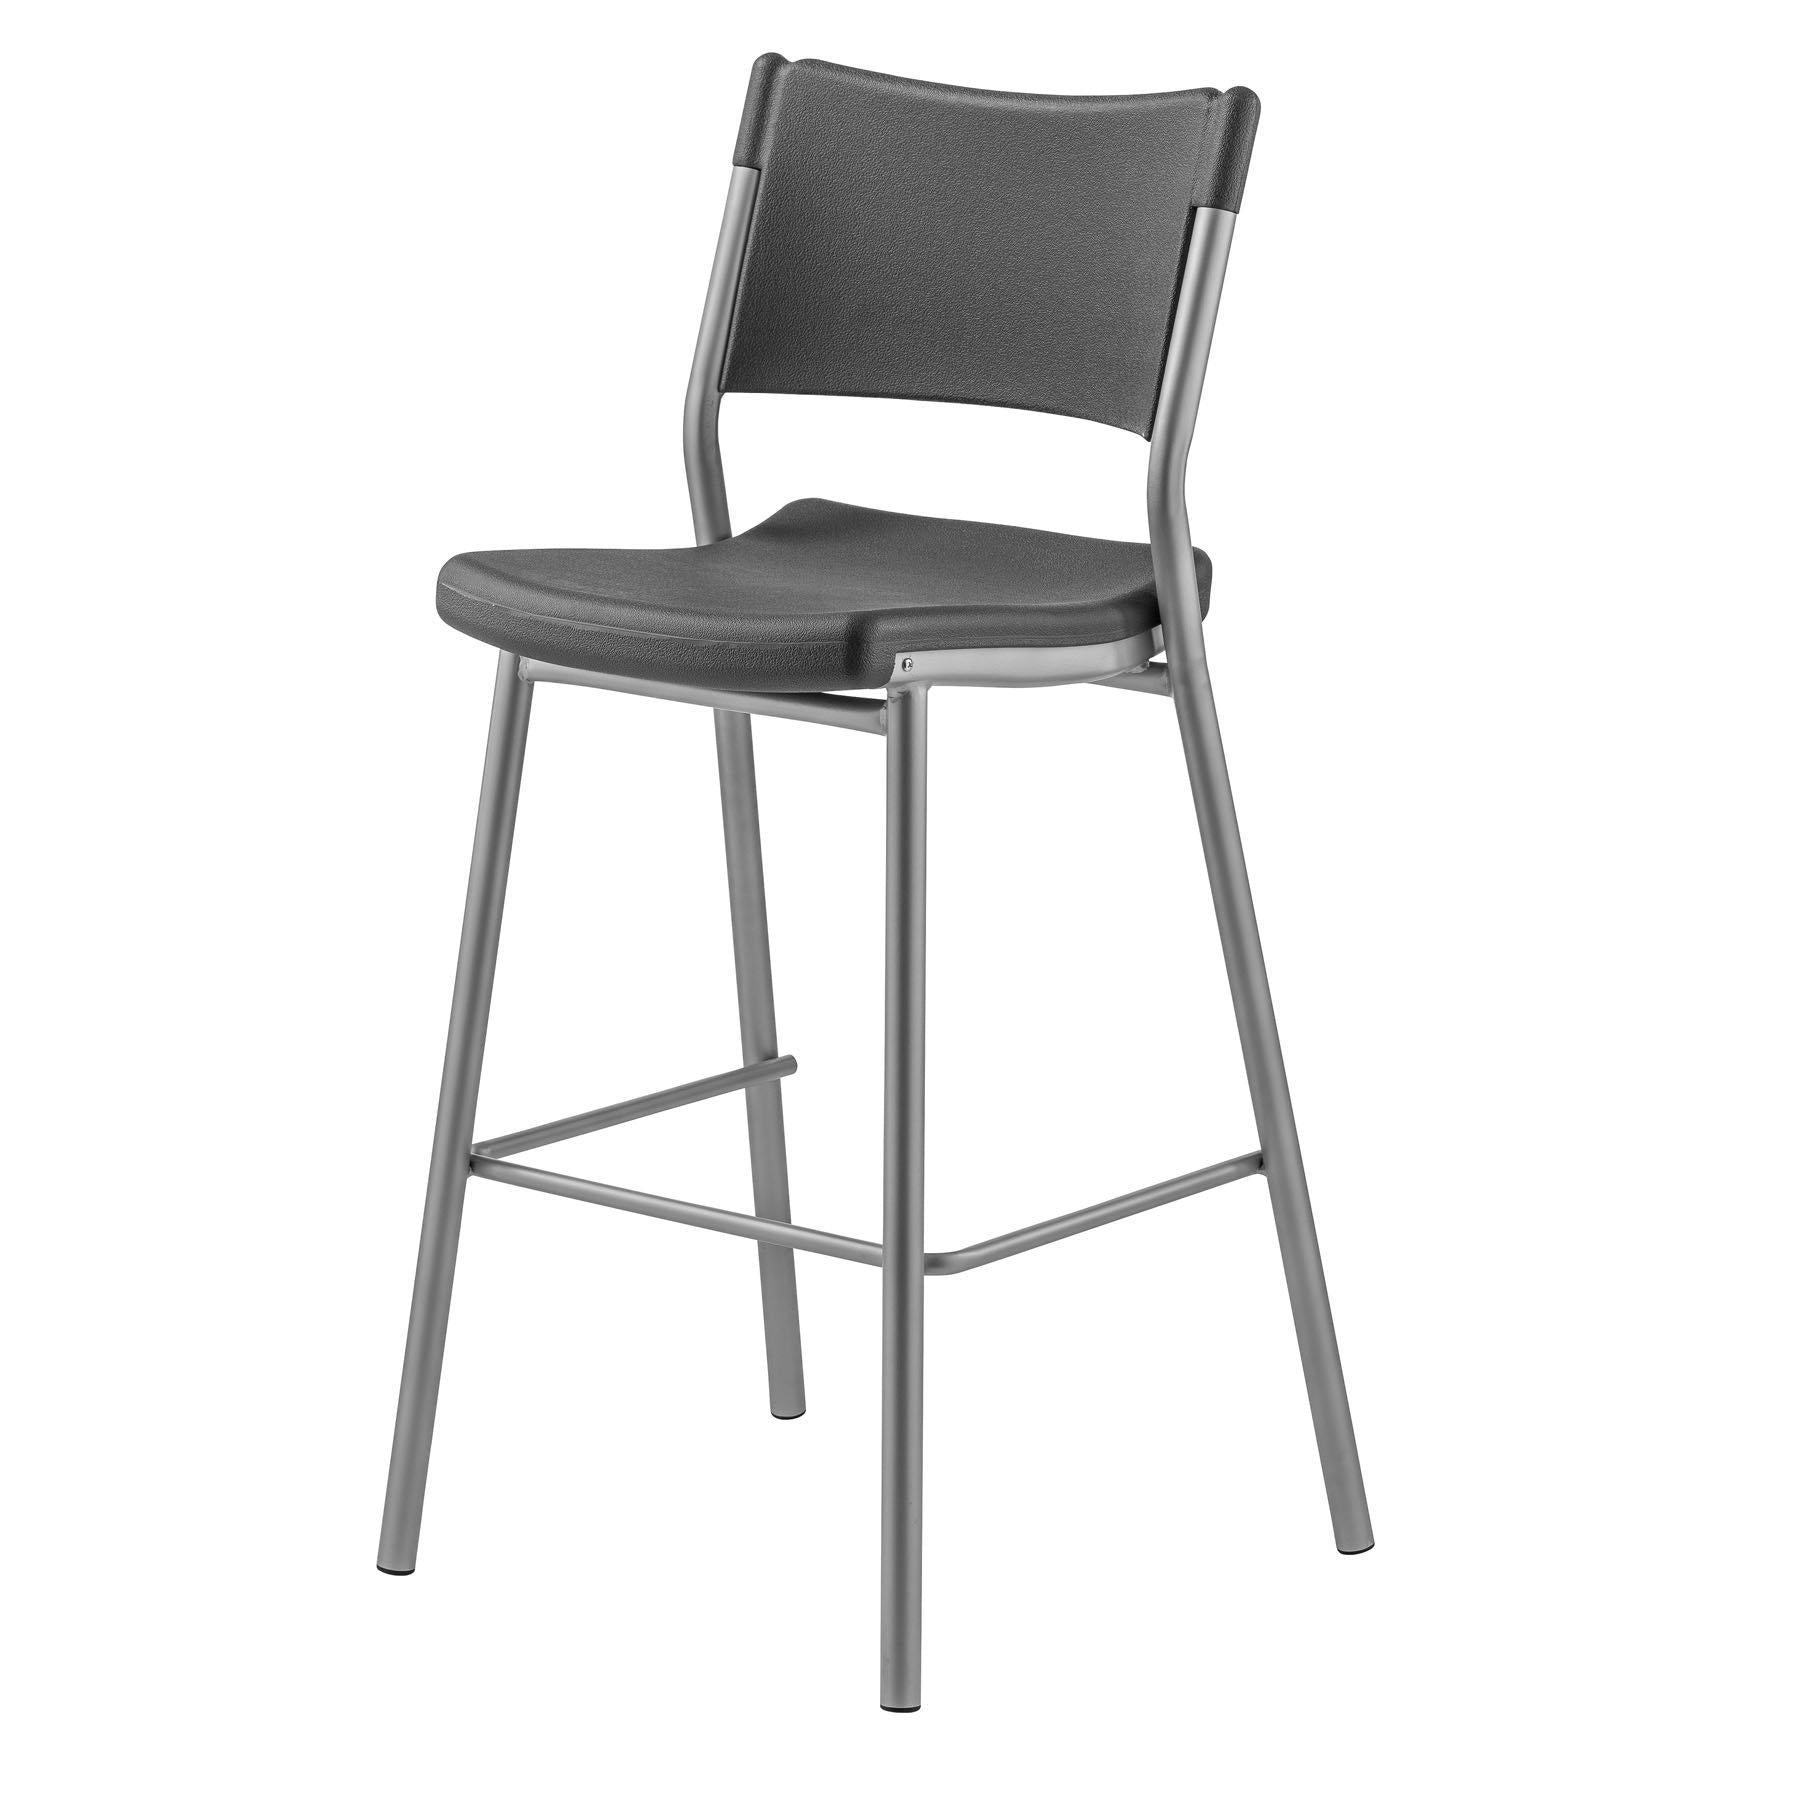 Cafe Time Stool, Charcoal Slate Top & Silver Frame